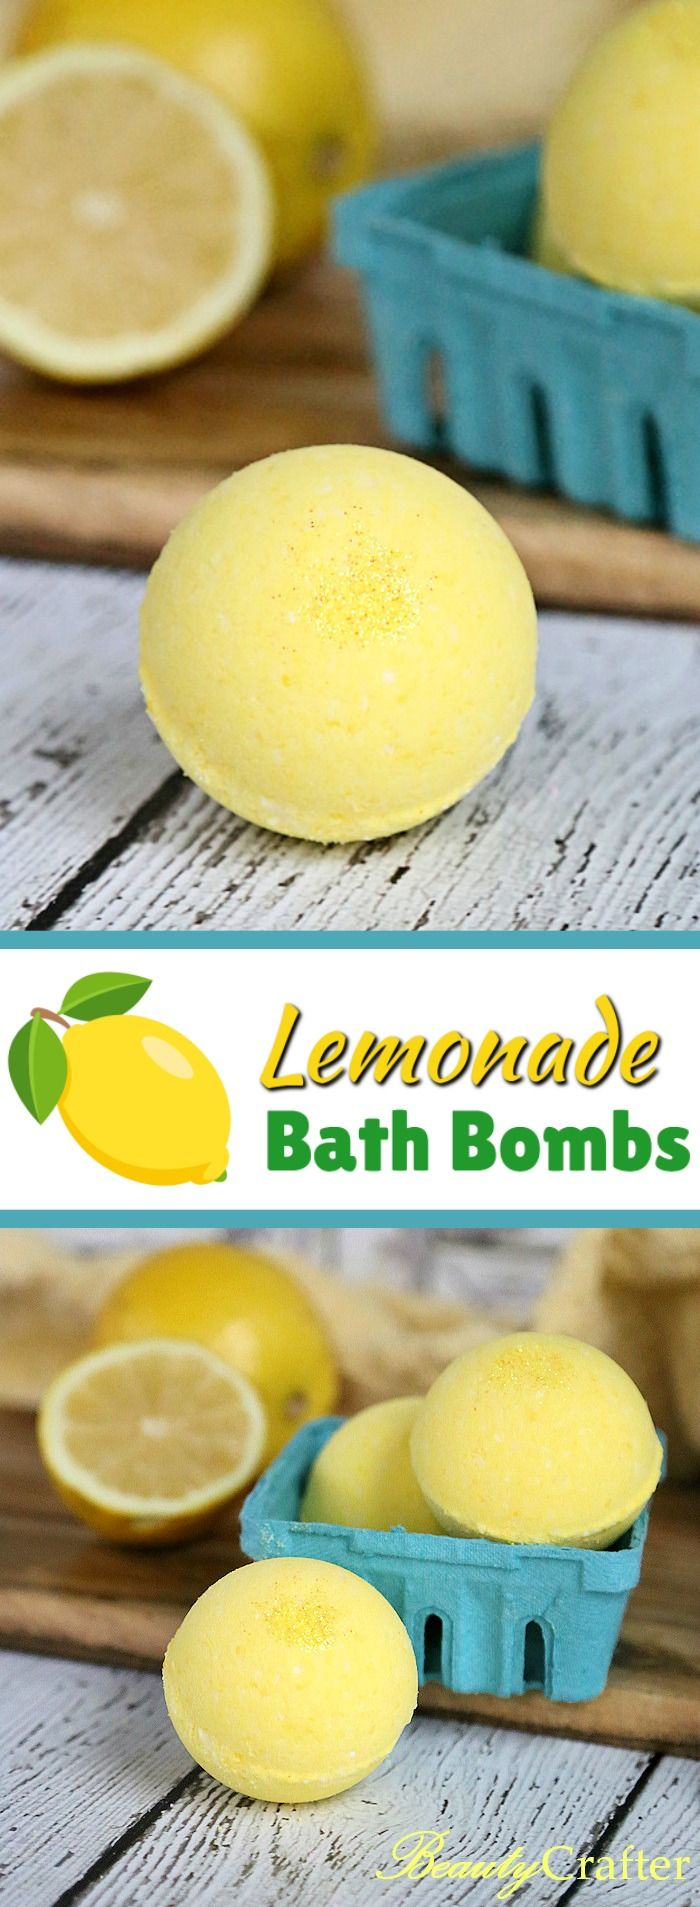 165 best diy bath products images on pinterest | diy, bath and cakes